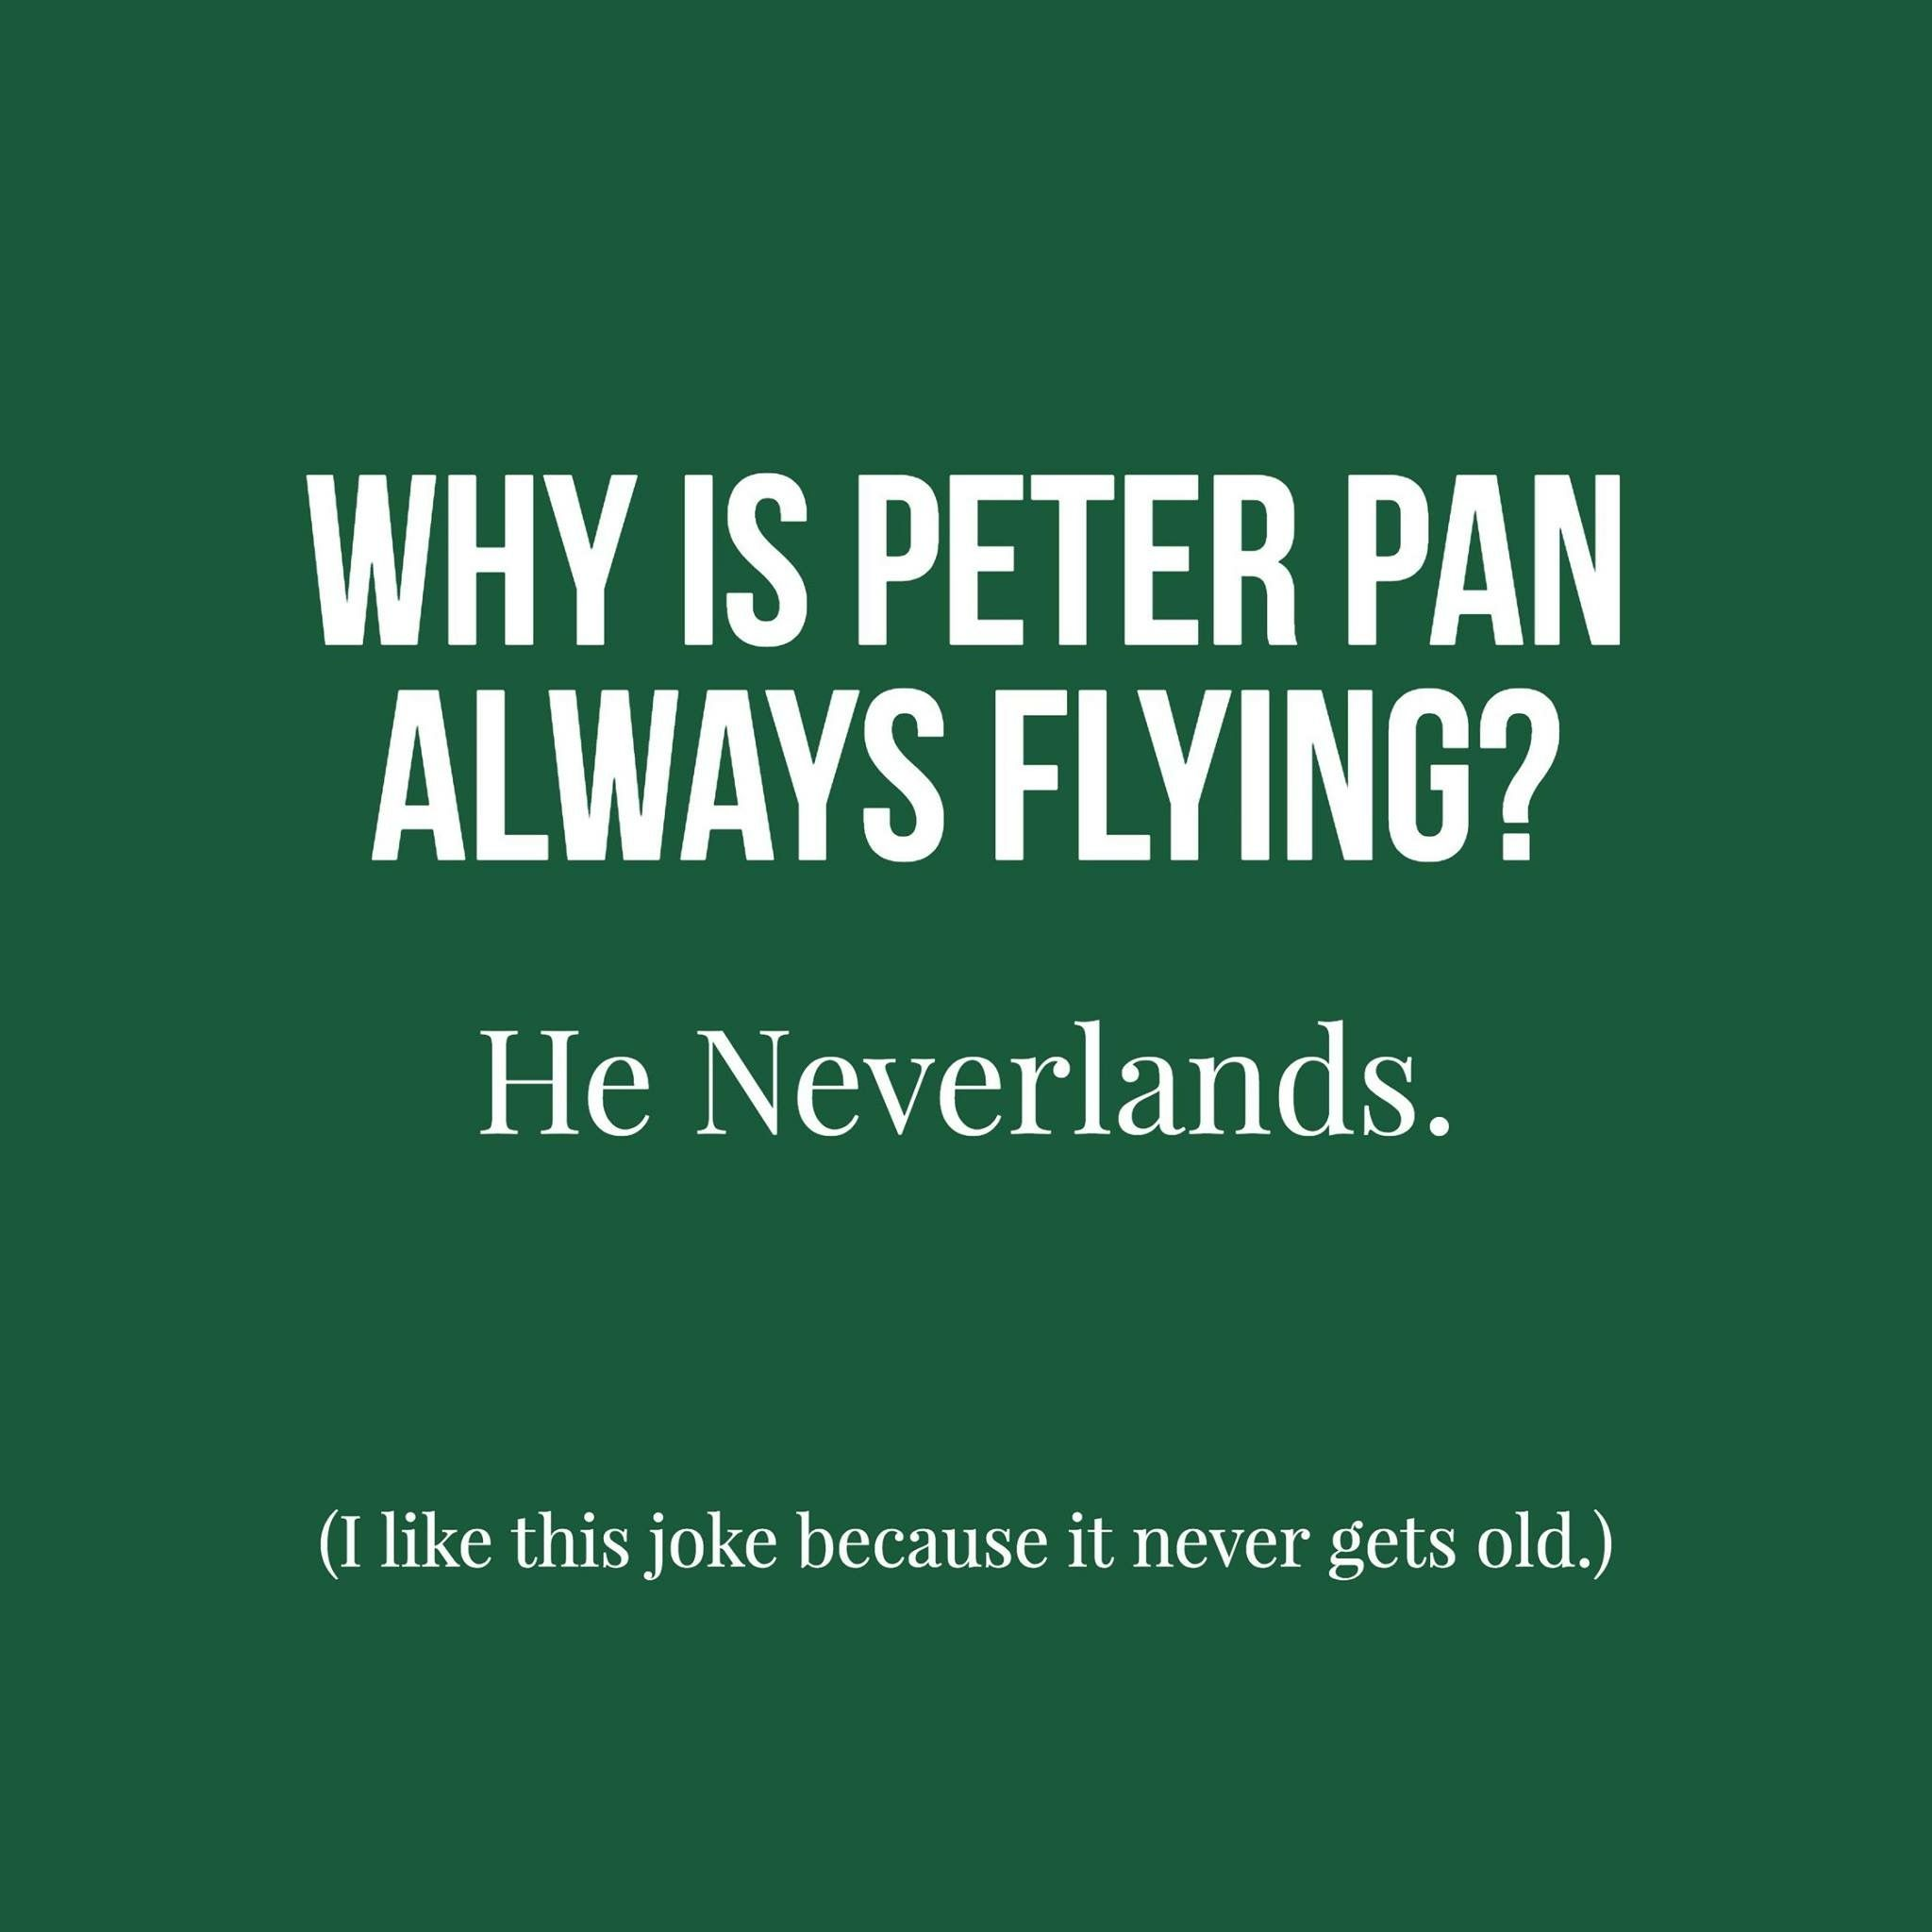 Why Is Peter Pan Always Flying Disney Jokes Funny Quotes Disney Memes